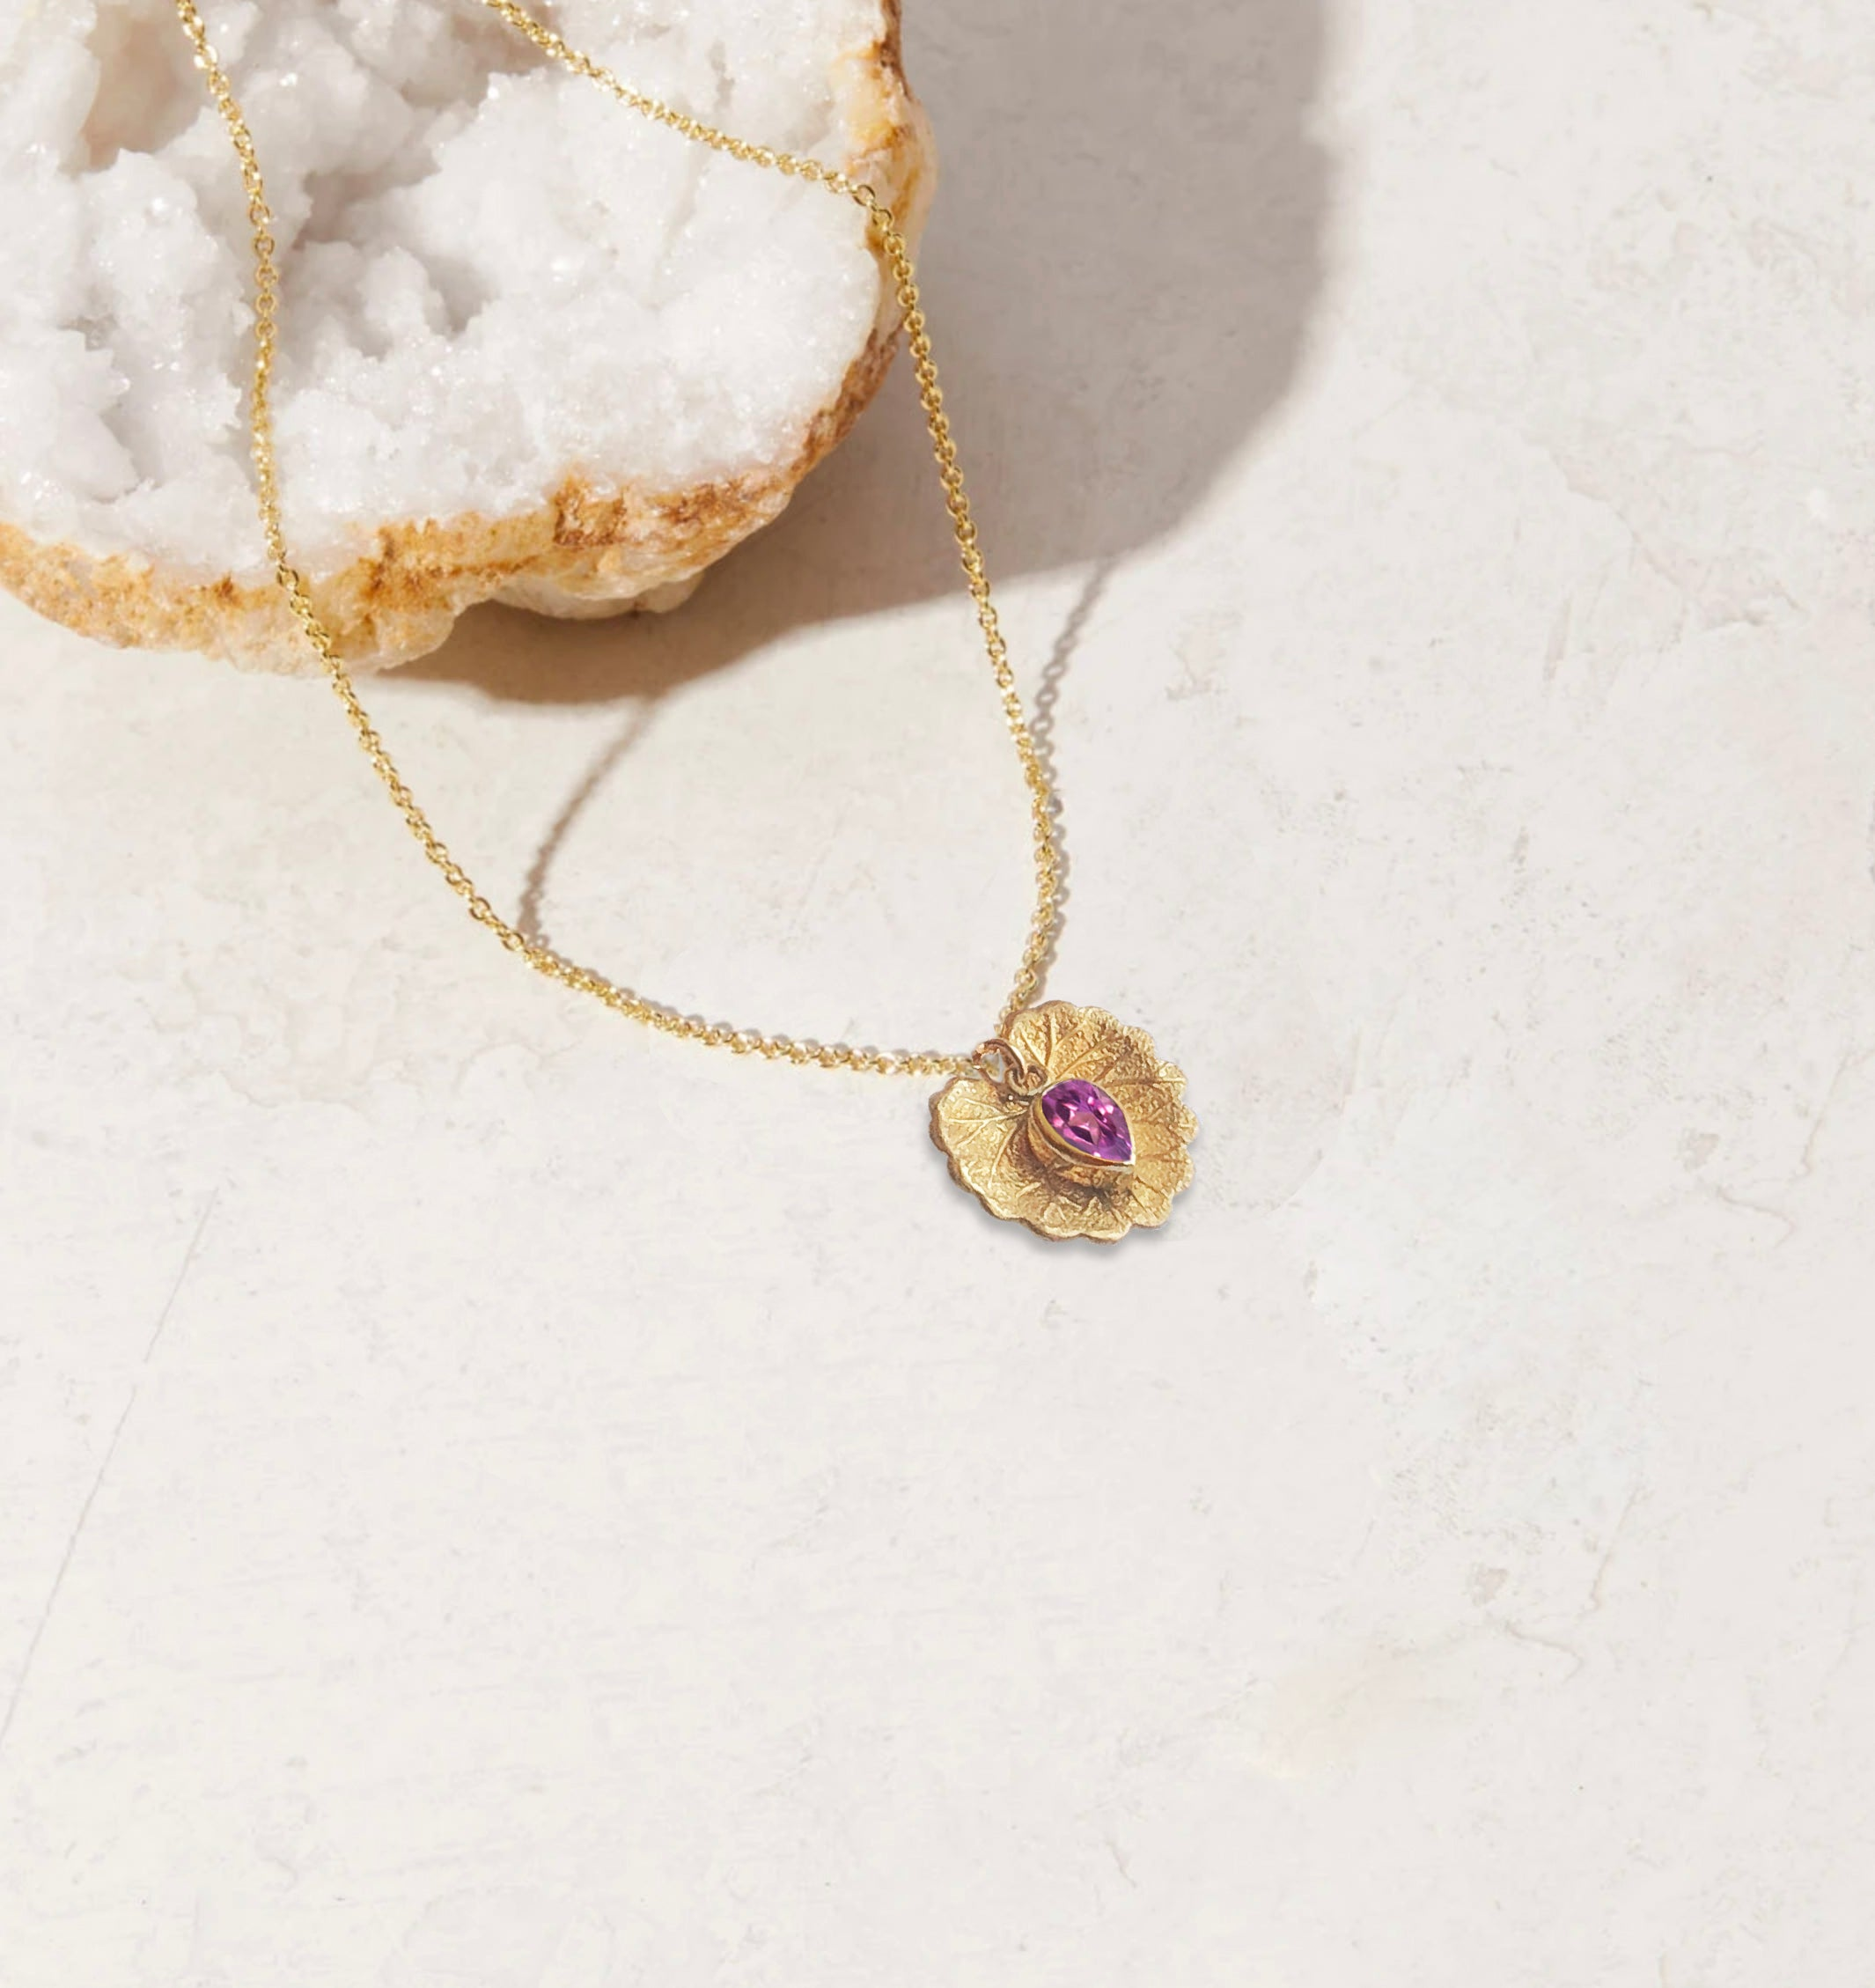 TOURMALINE PERFUME WITH NECKLACE | October